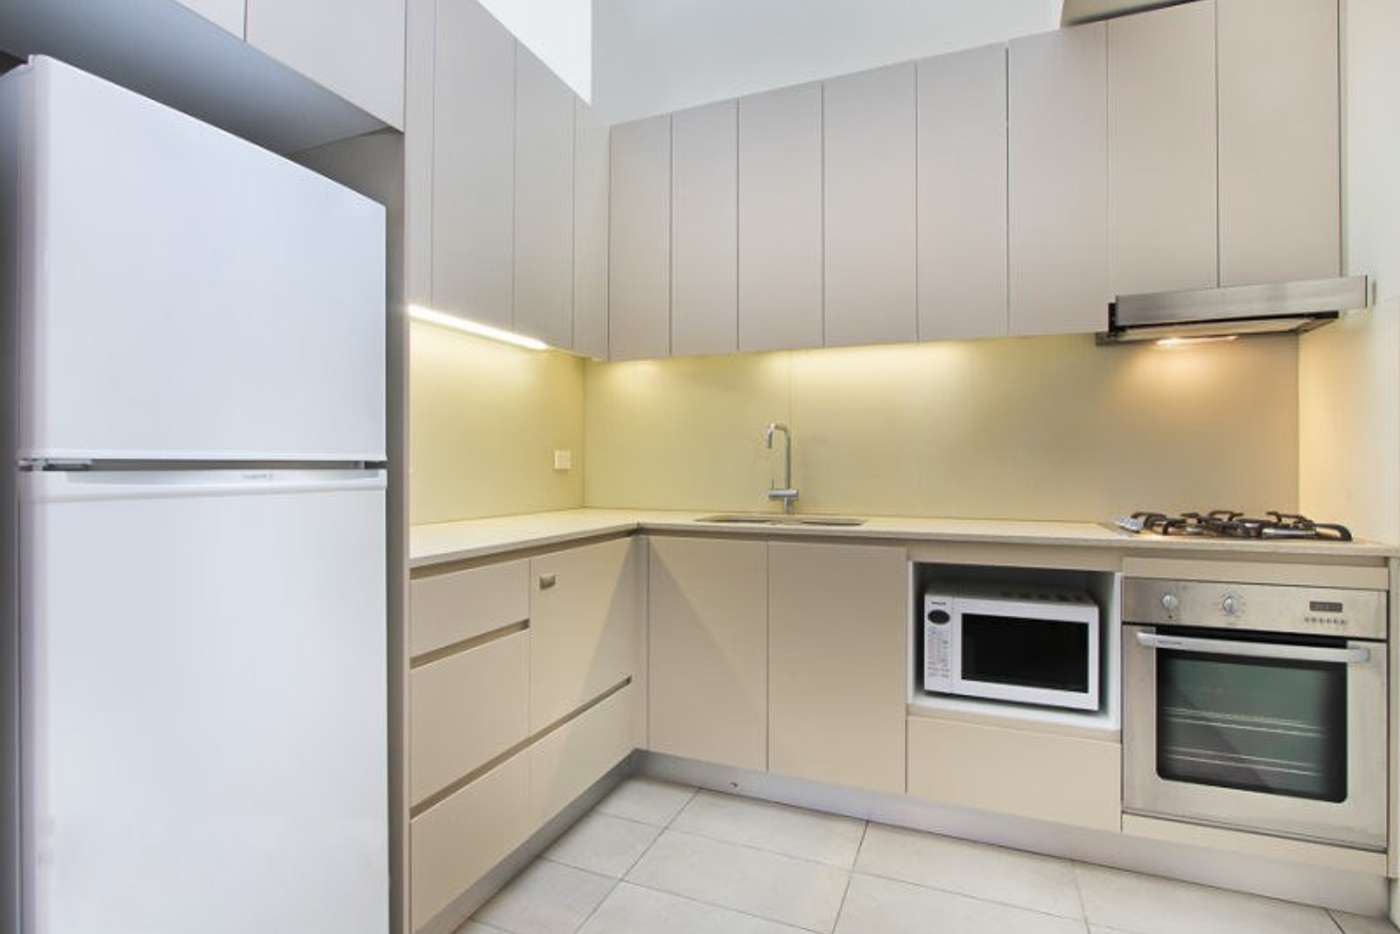 Main view of Homely apartment listing, A2/15 Green Street, Maroubra NSW 2035